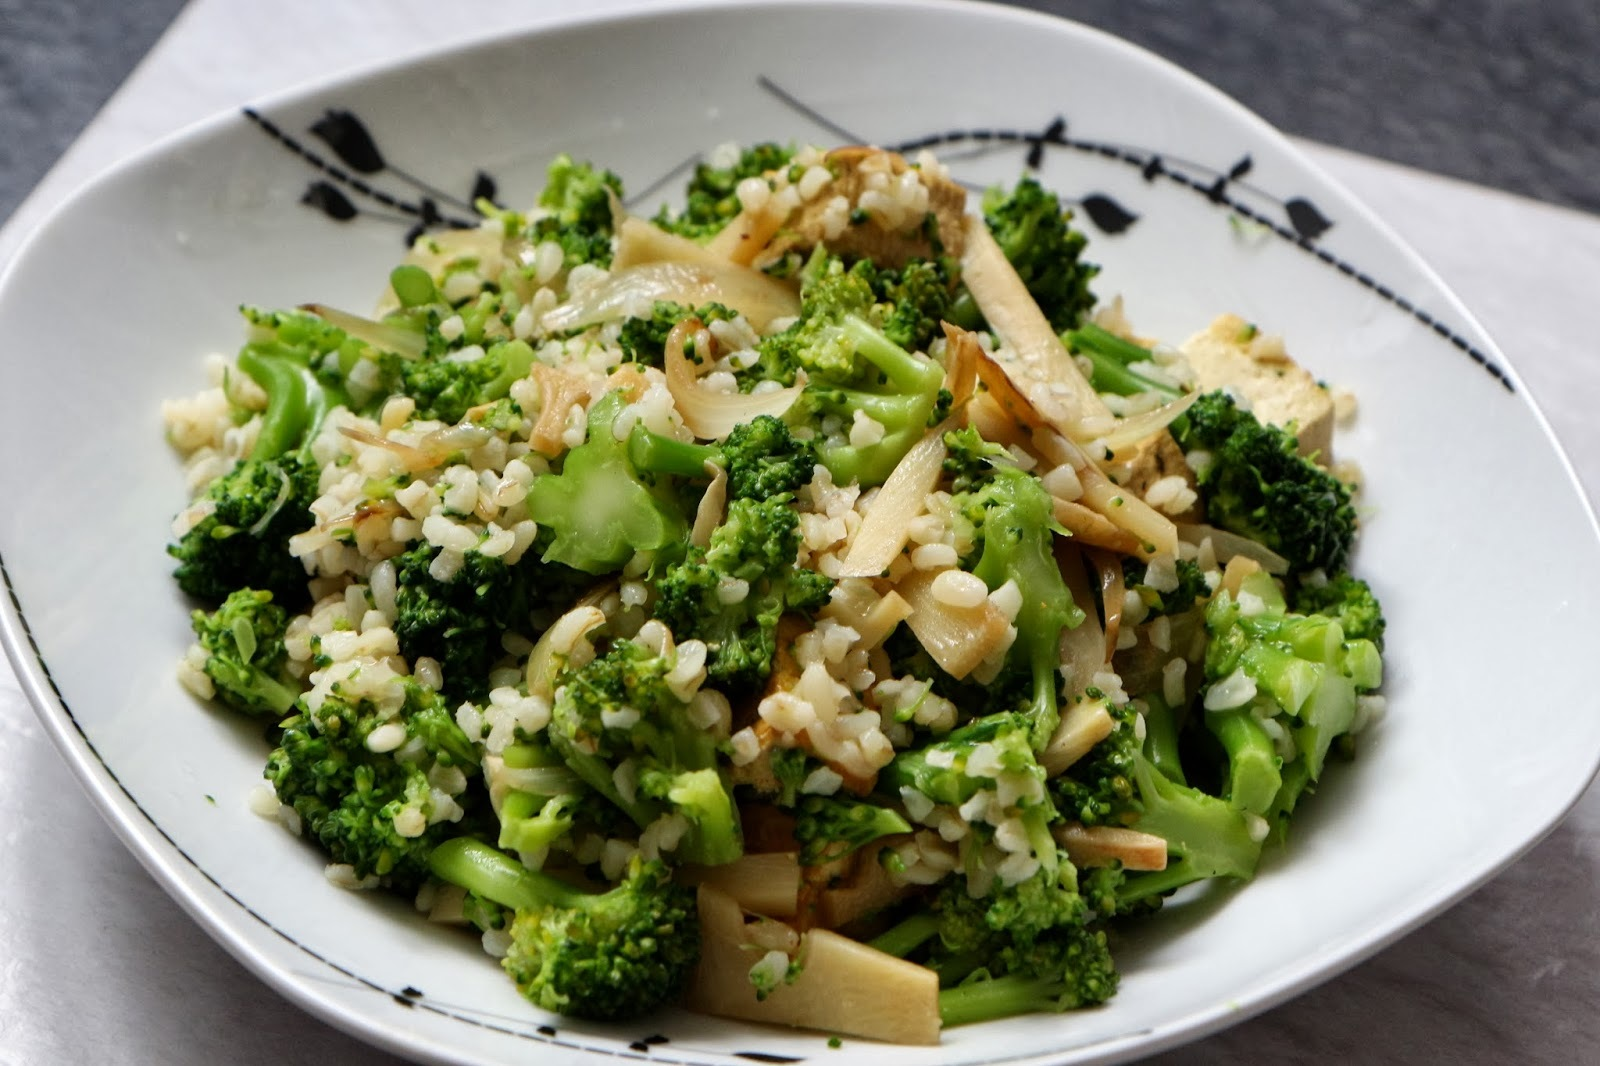 FitFam Bakers - Bulgur with broccoli and tofu